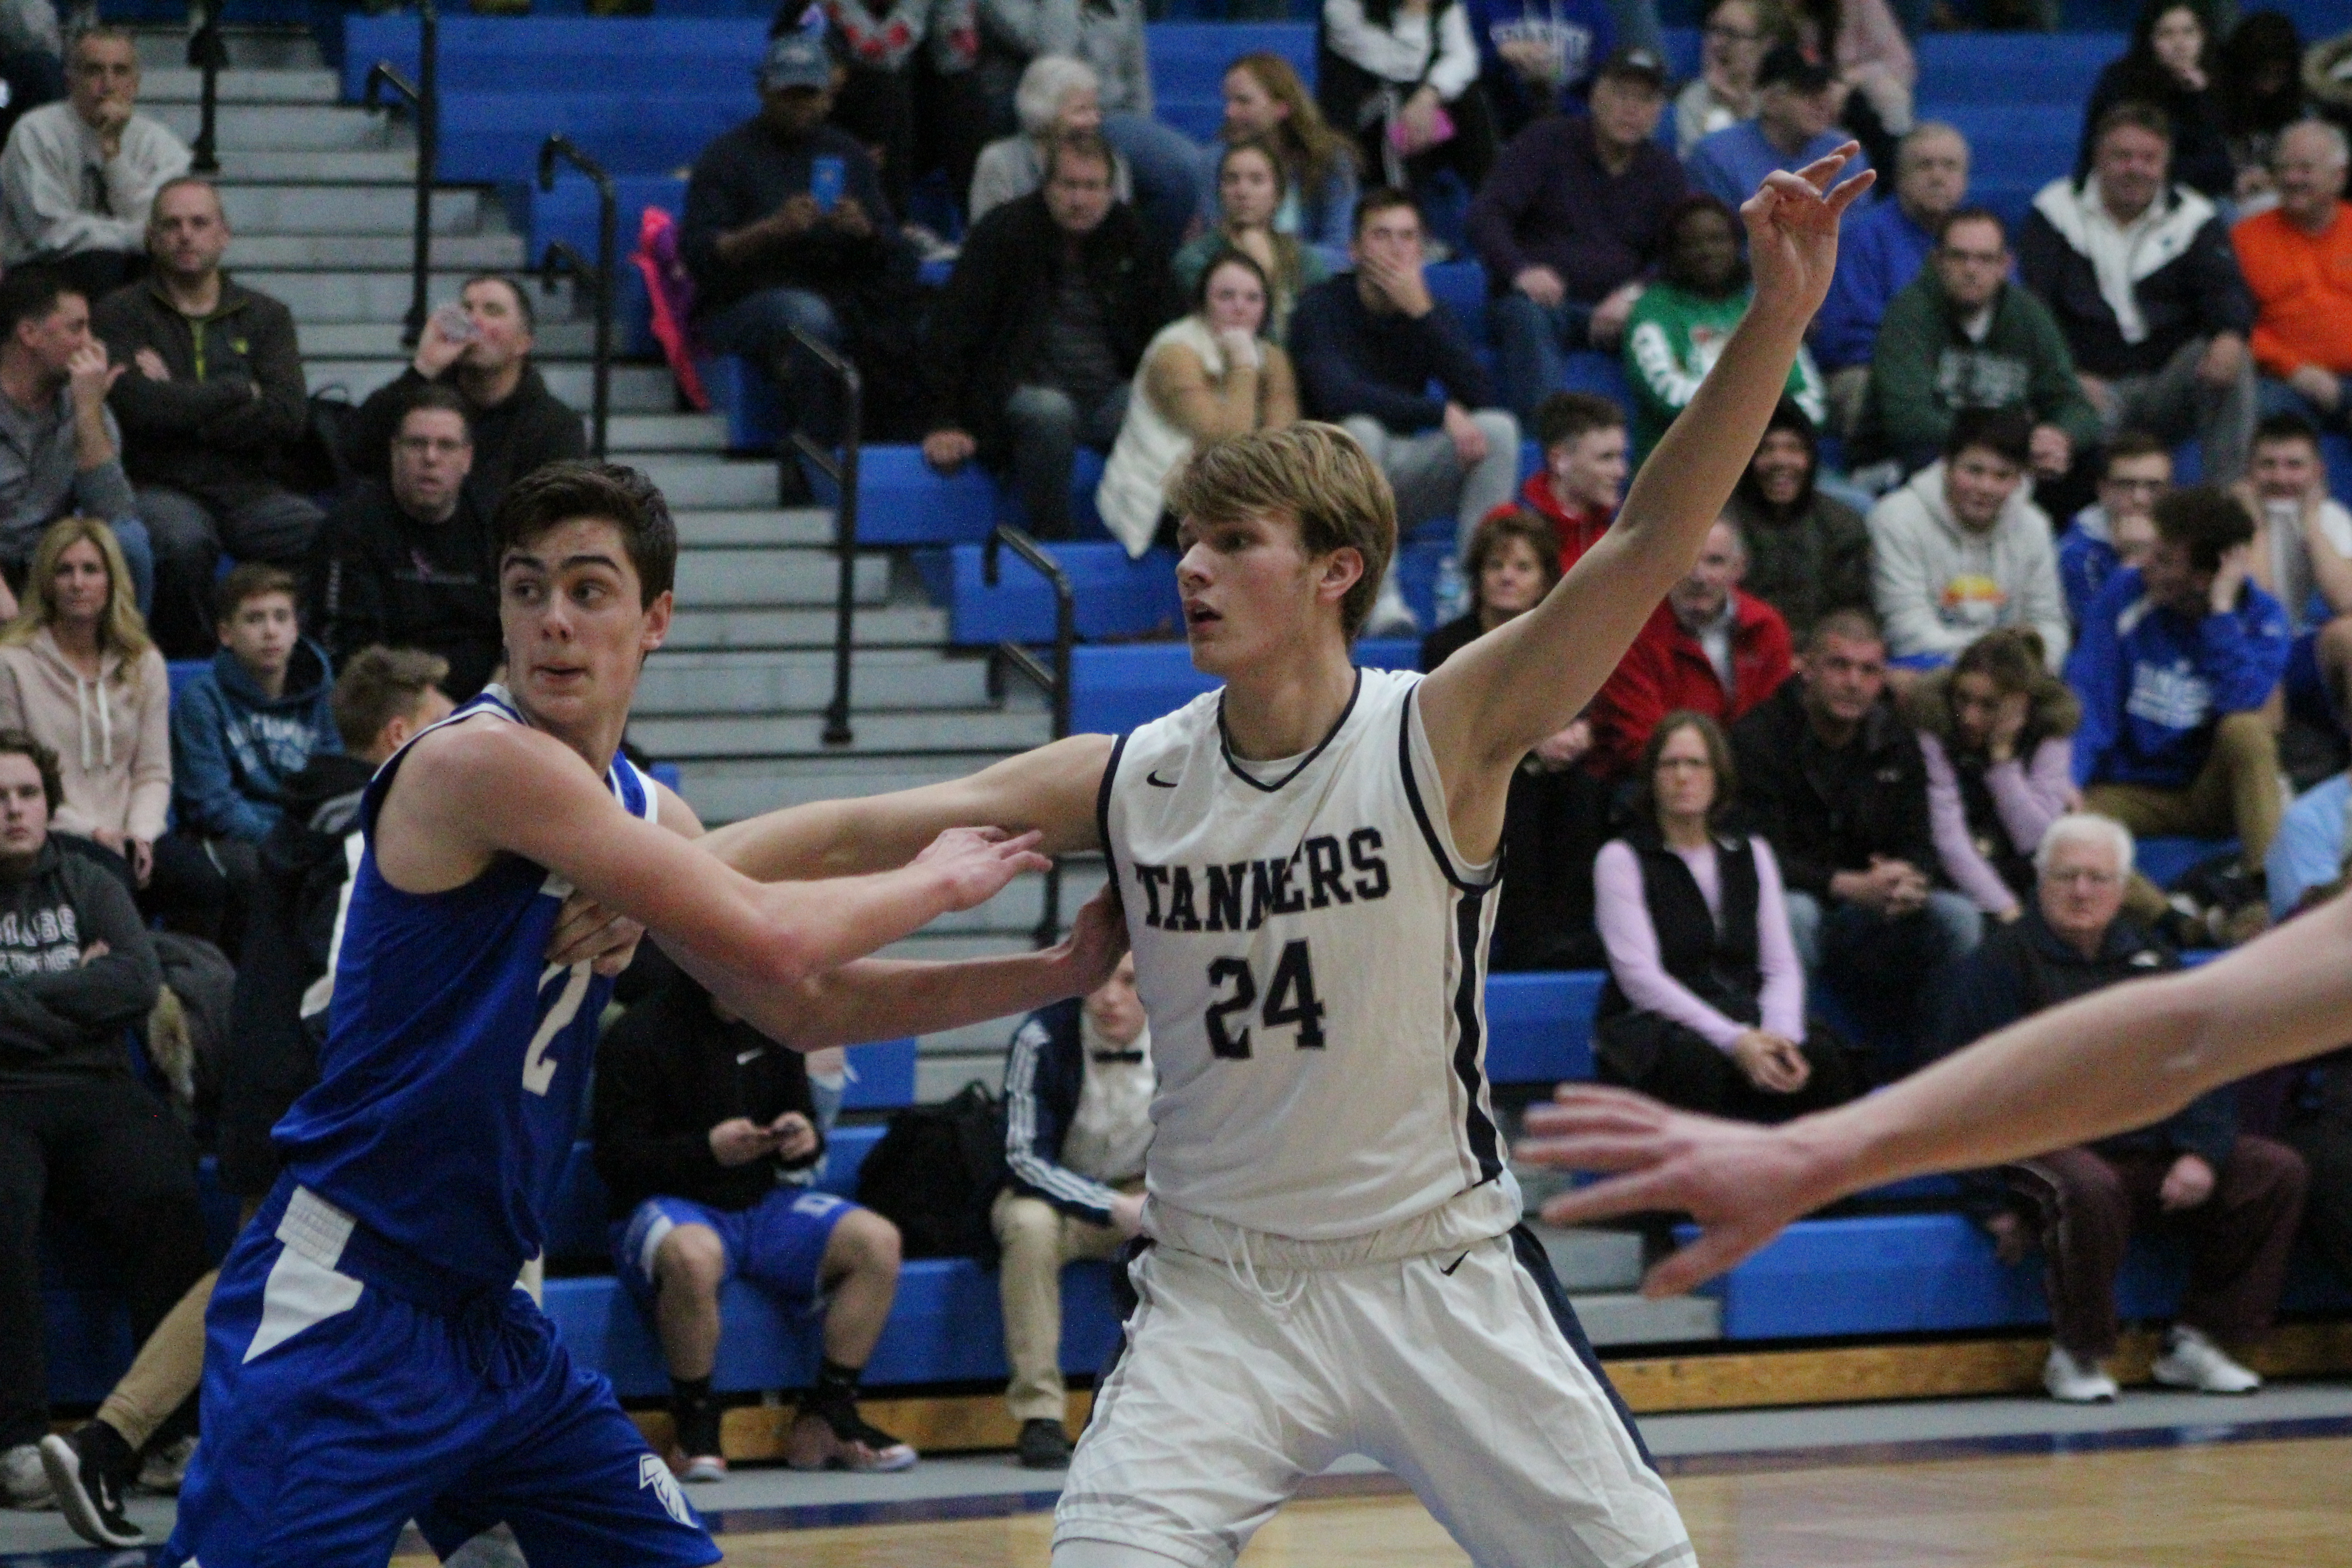 3f97af872 Peabody boys  basketball team falls to 0-2 after loss to Falcons ...